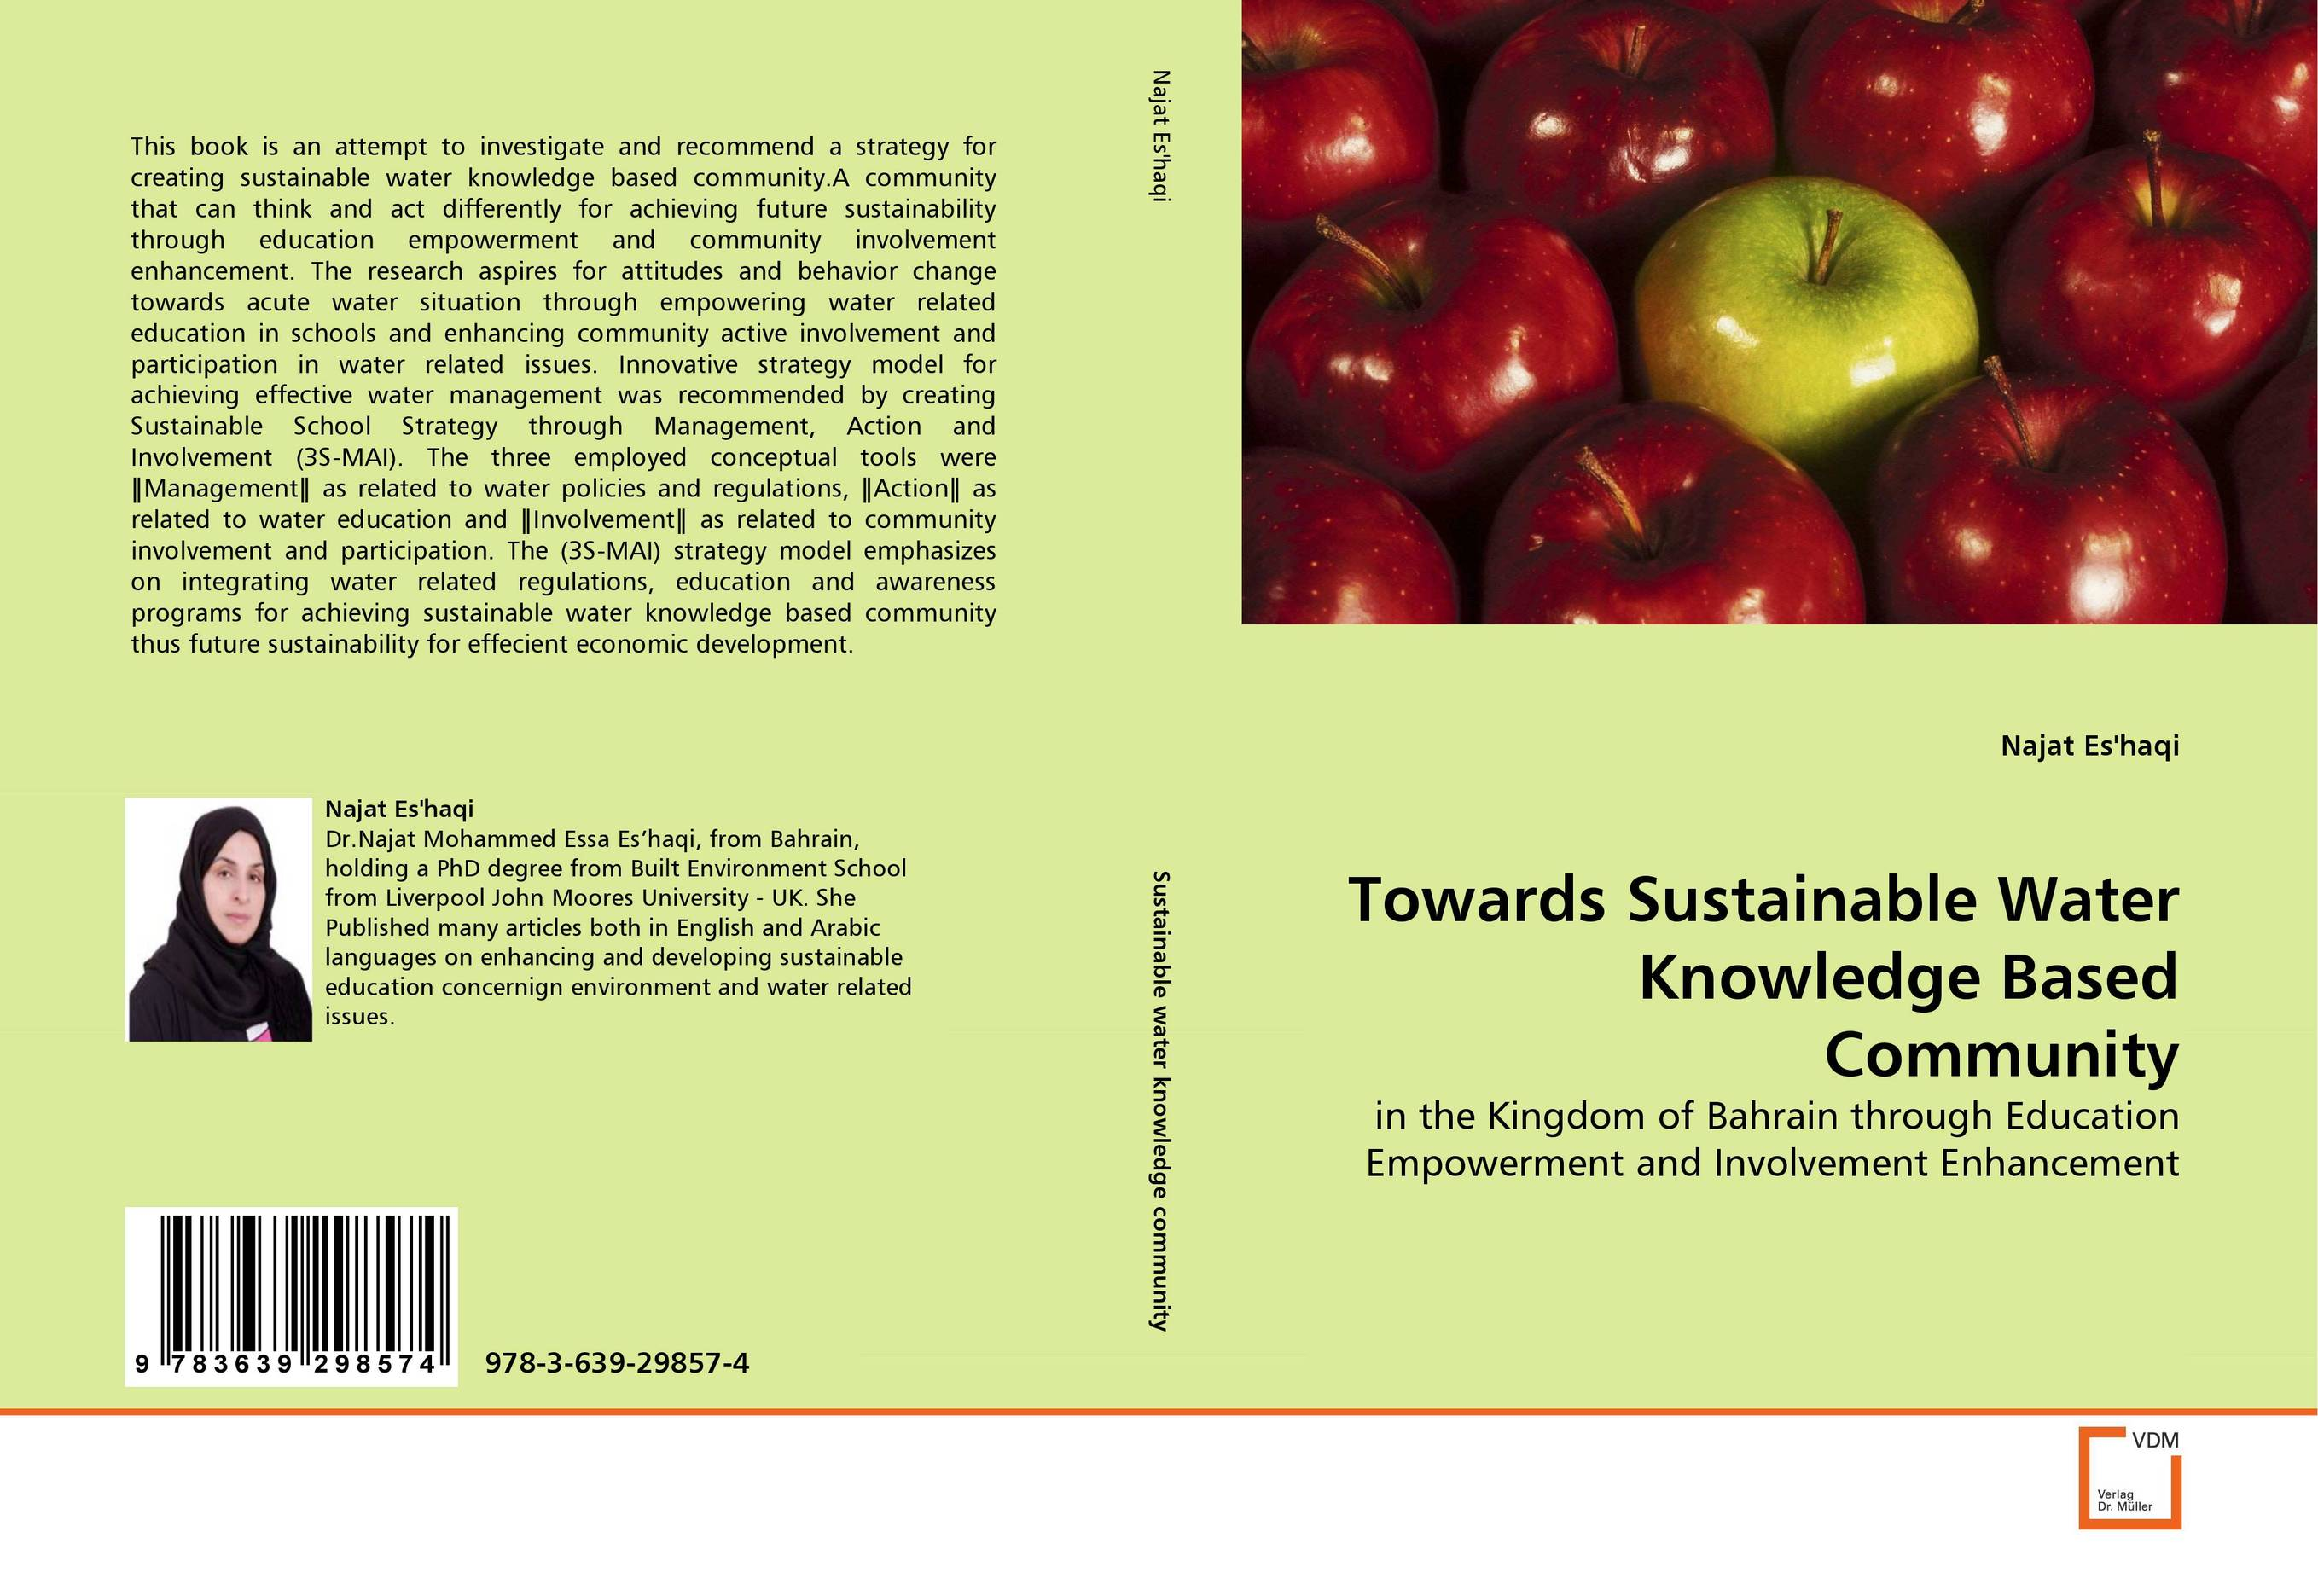 Towards Sustainable Water Knowledge Based Community knowledge management strategy